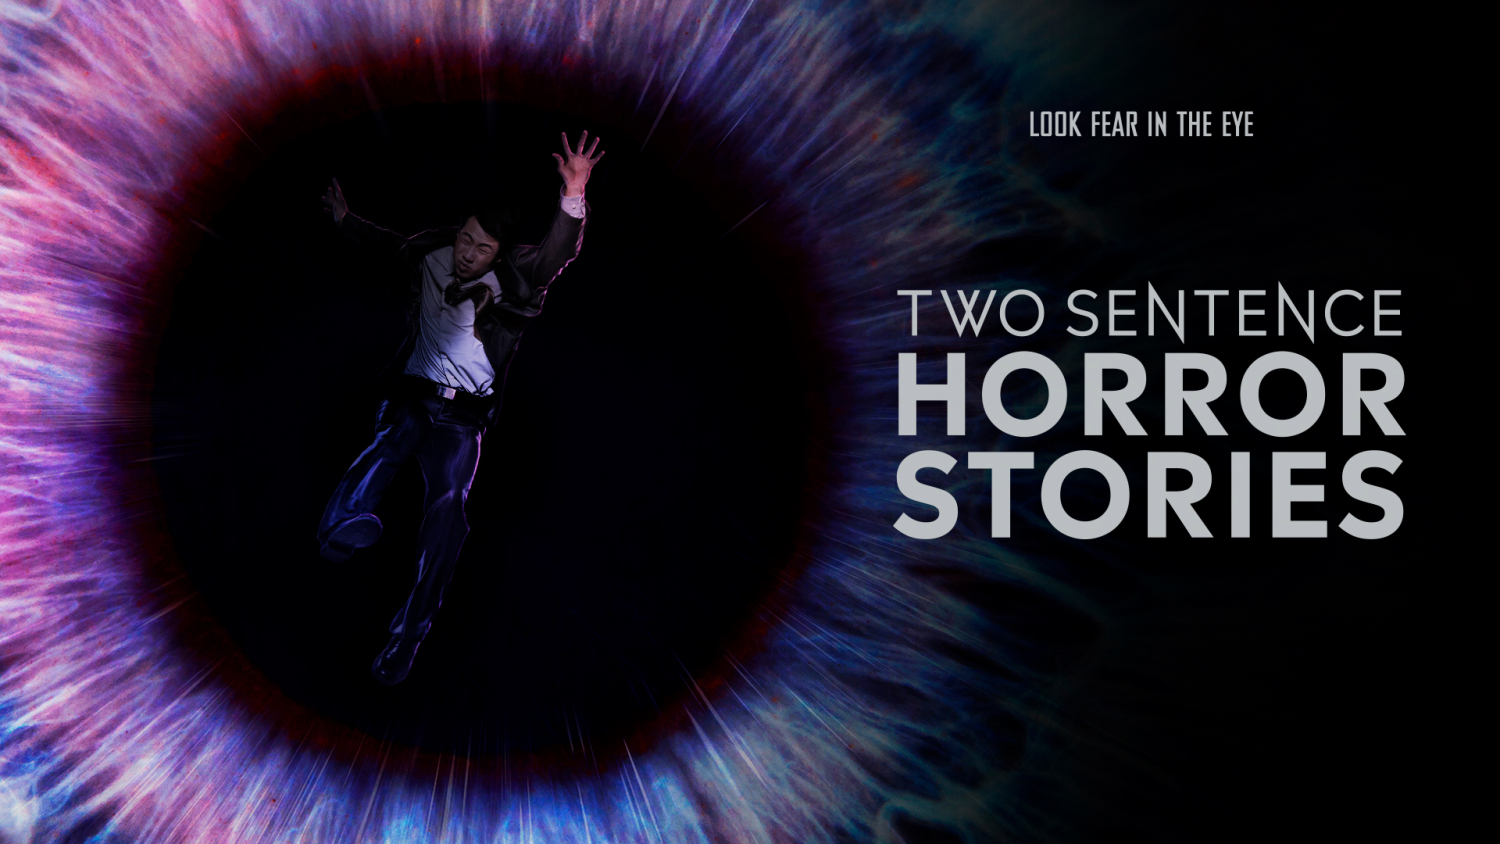 Two Sentence Horror Stories Season 2: Release Date and Latest Updates!